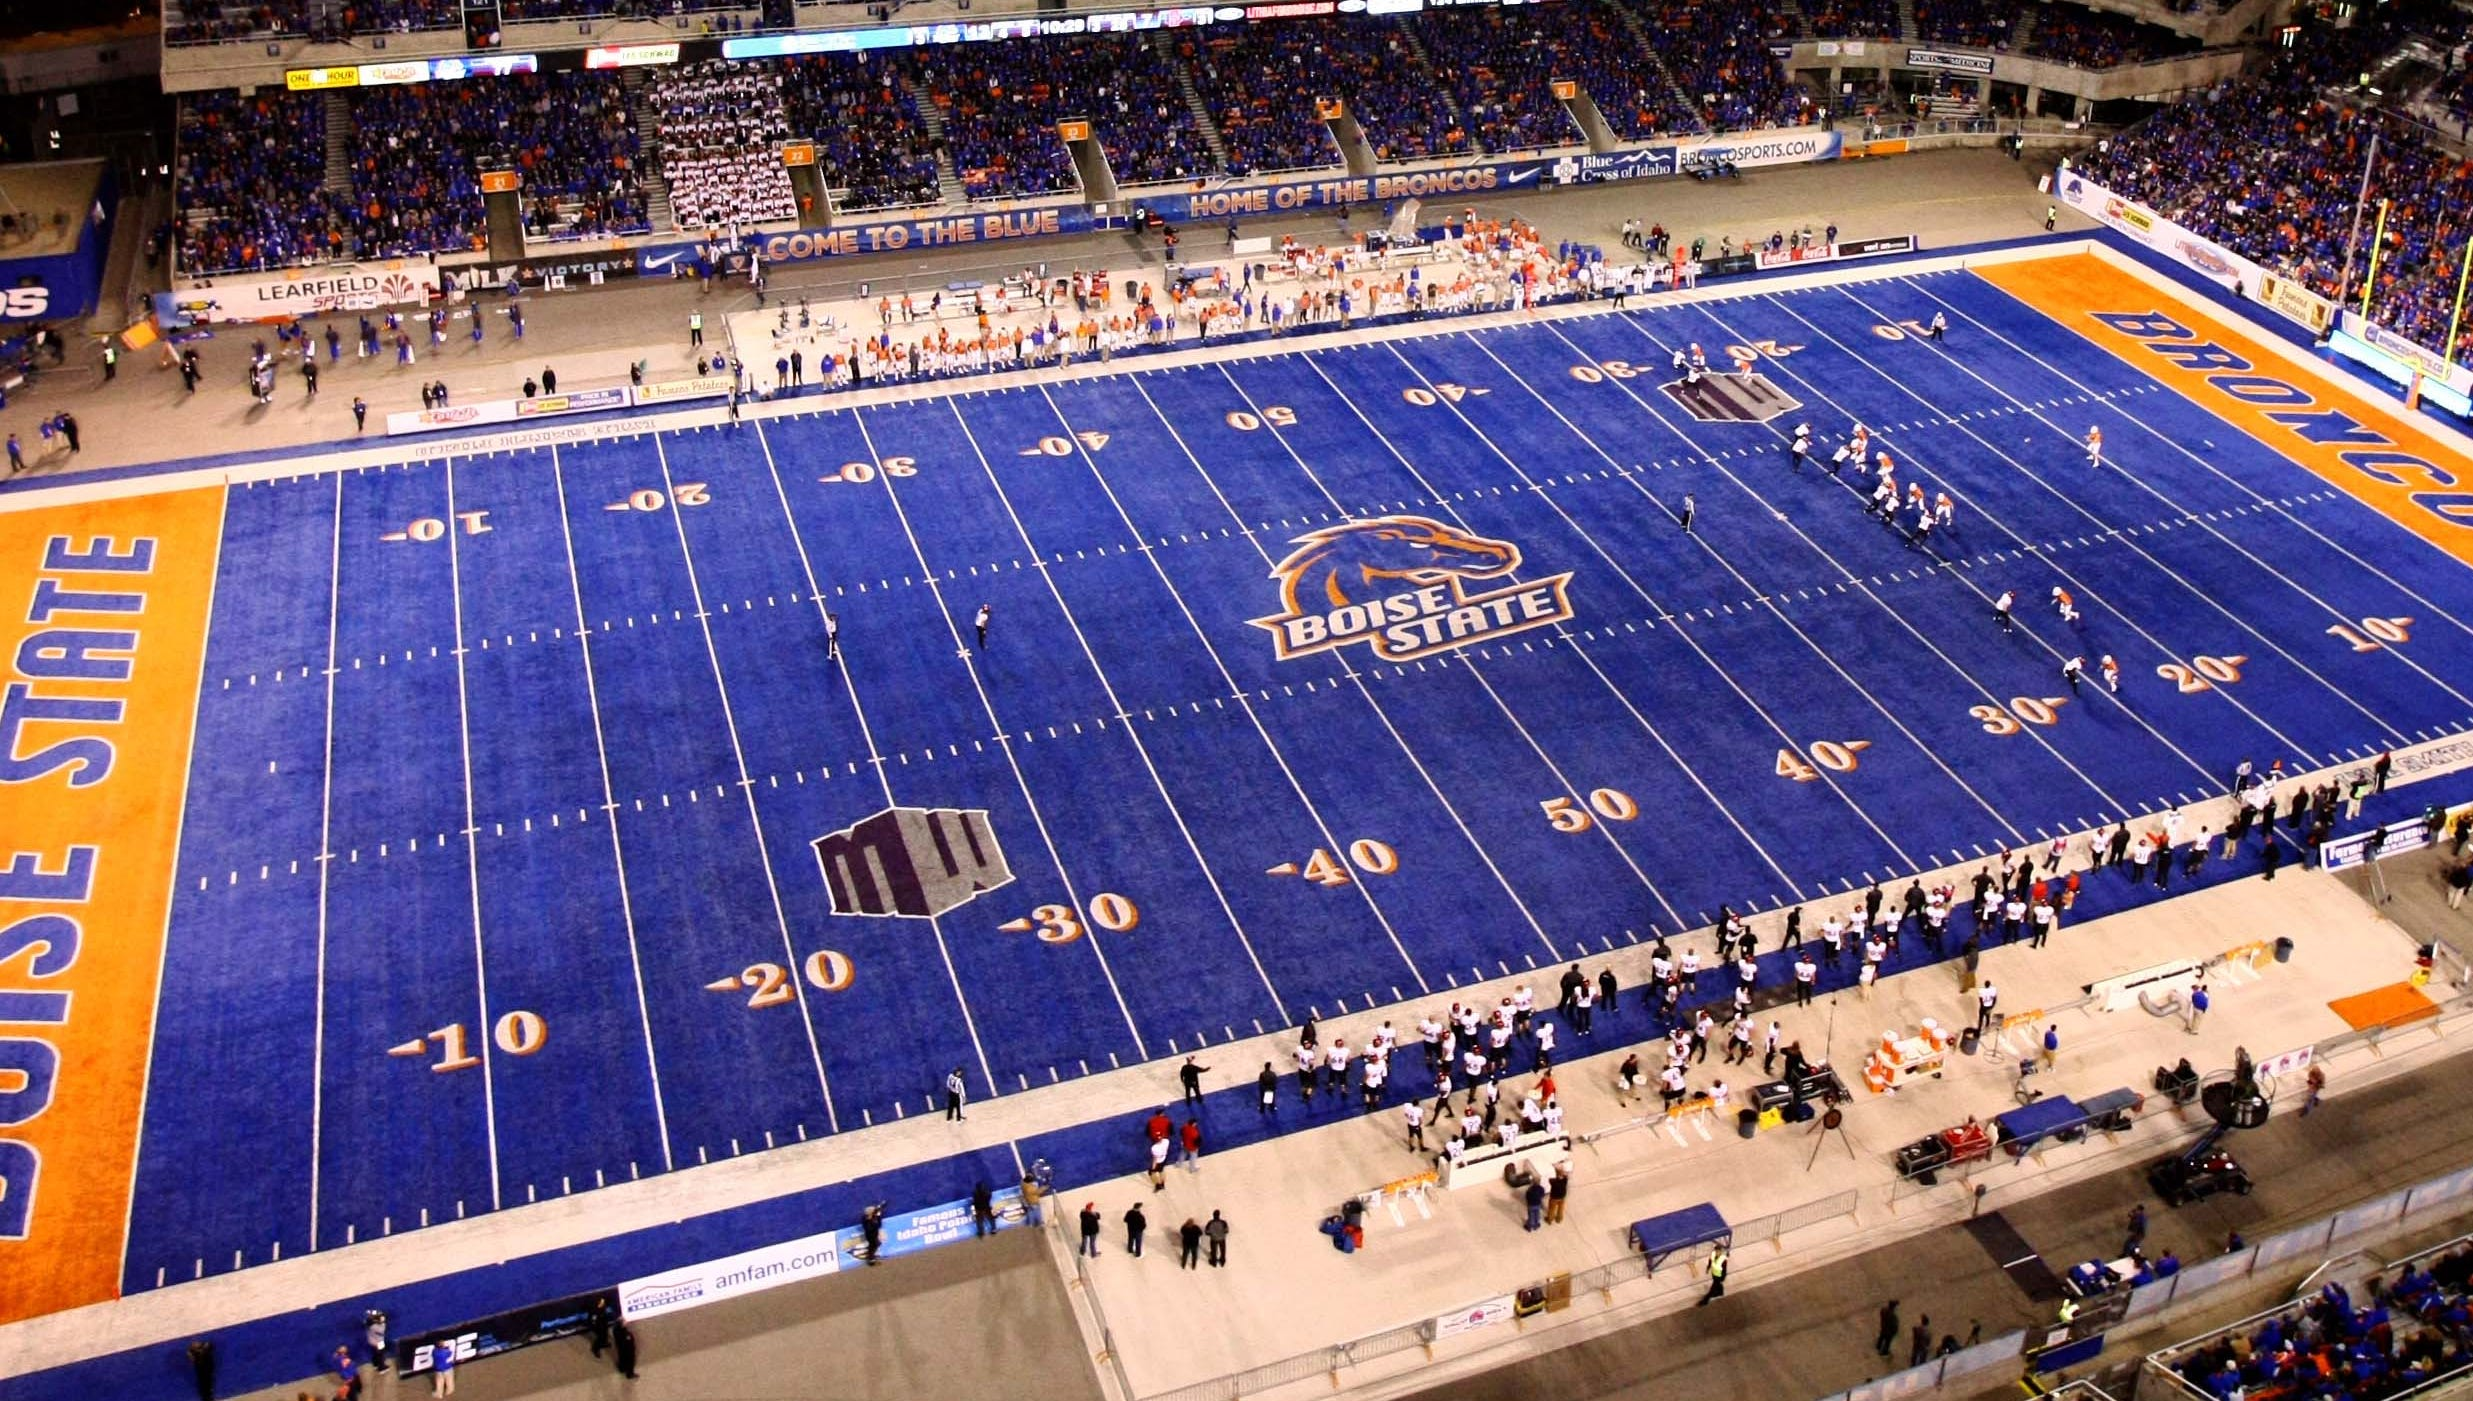 Bronco Stadium, Boise State: The standout feature is the famous blue turf, which was installed in 1986. It was largely anonymous until the school emerged as a national power this century.